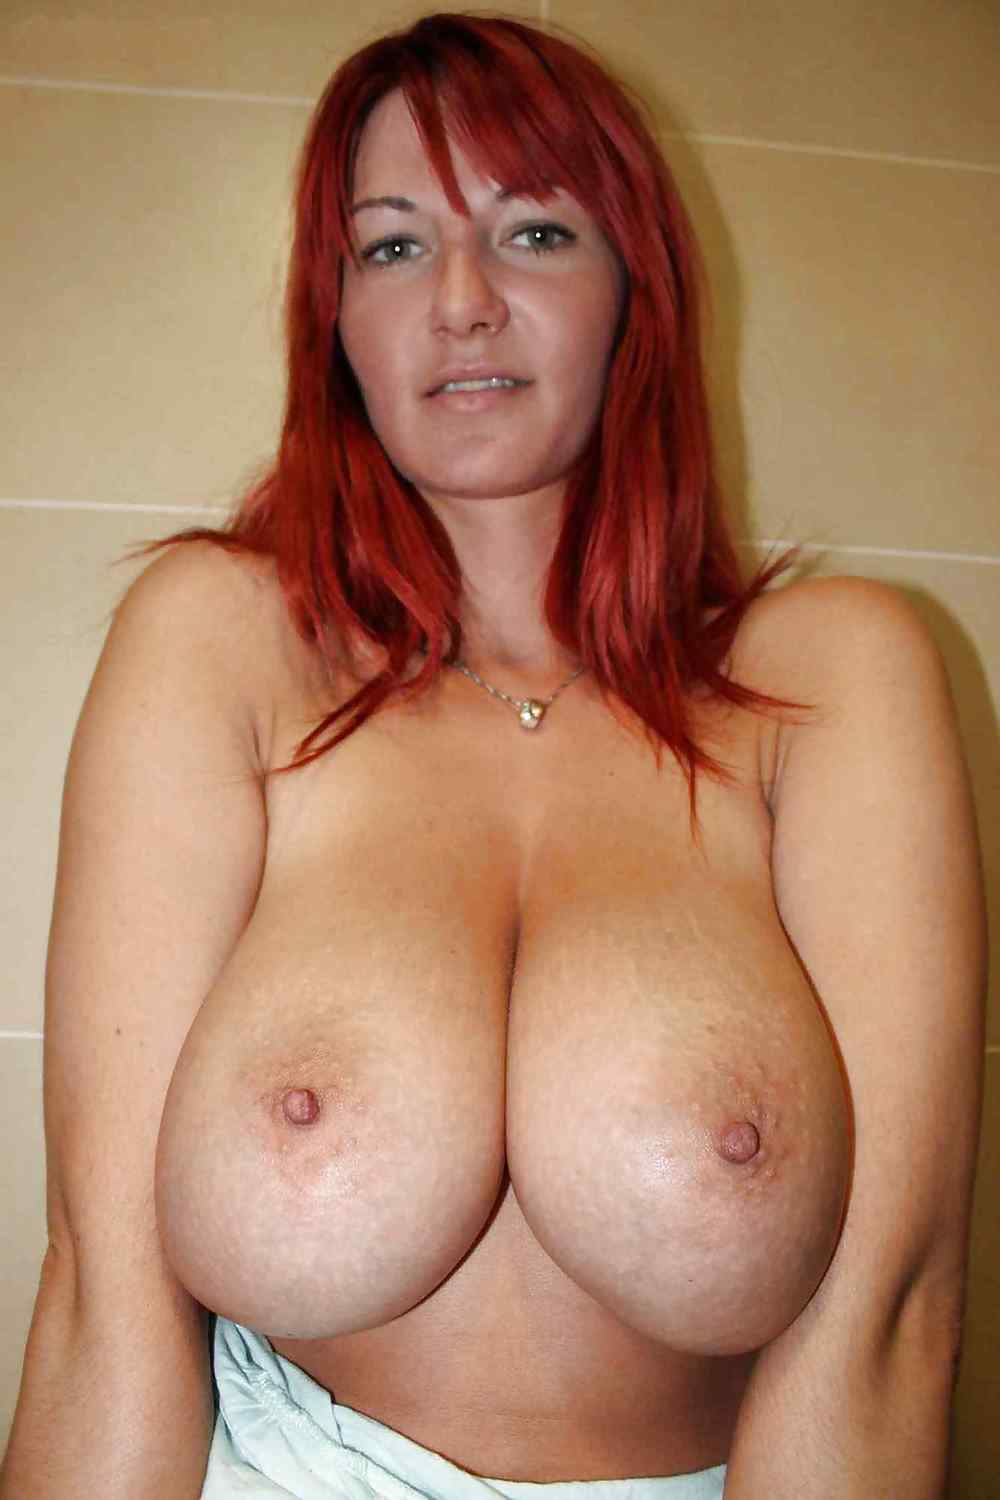 Hot Milfs With Big Boobs Love To Have Her Tits Fucked